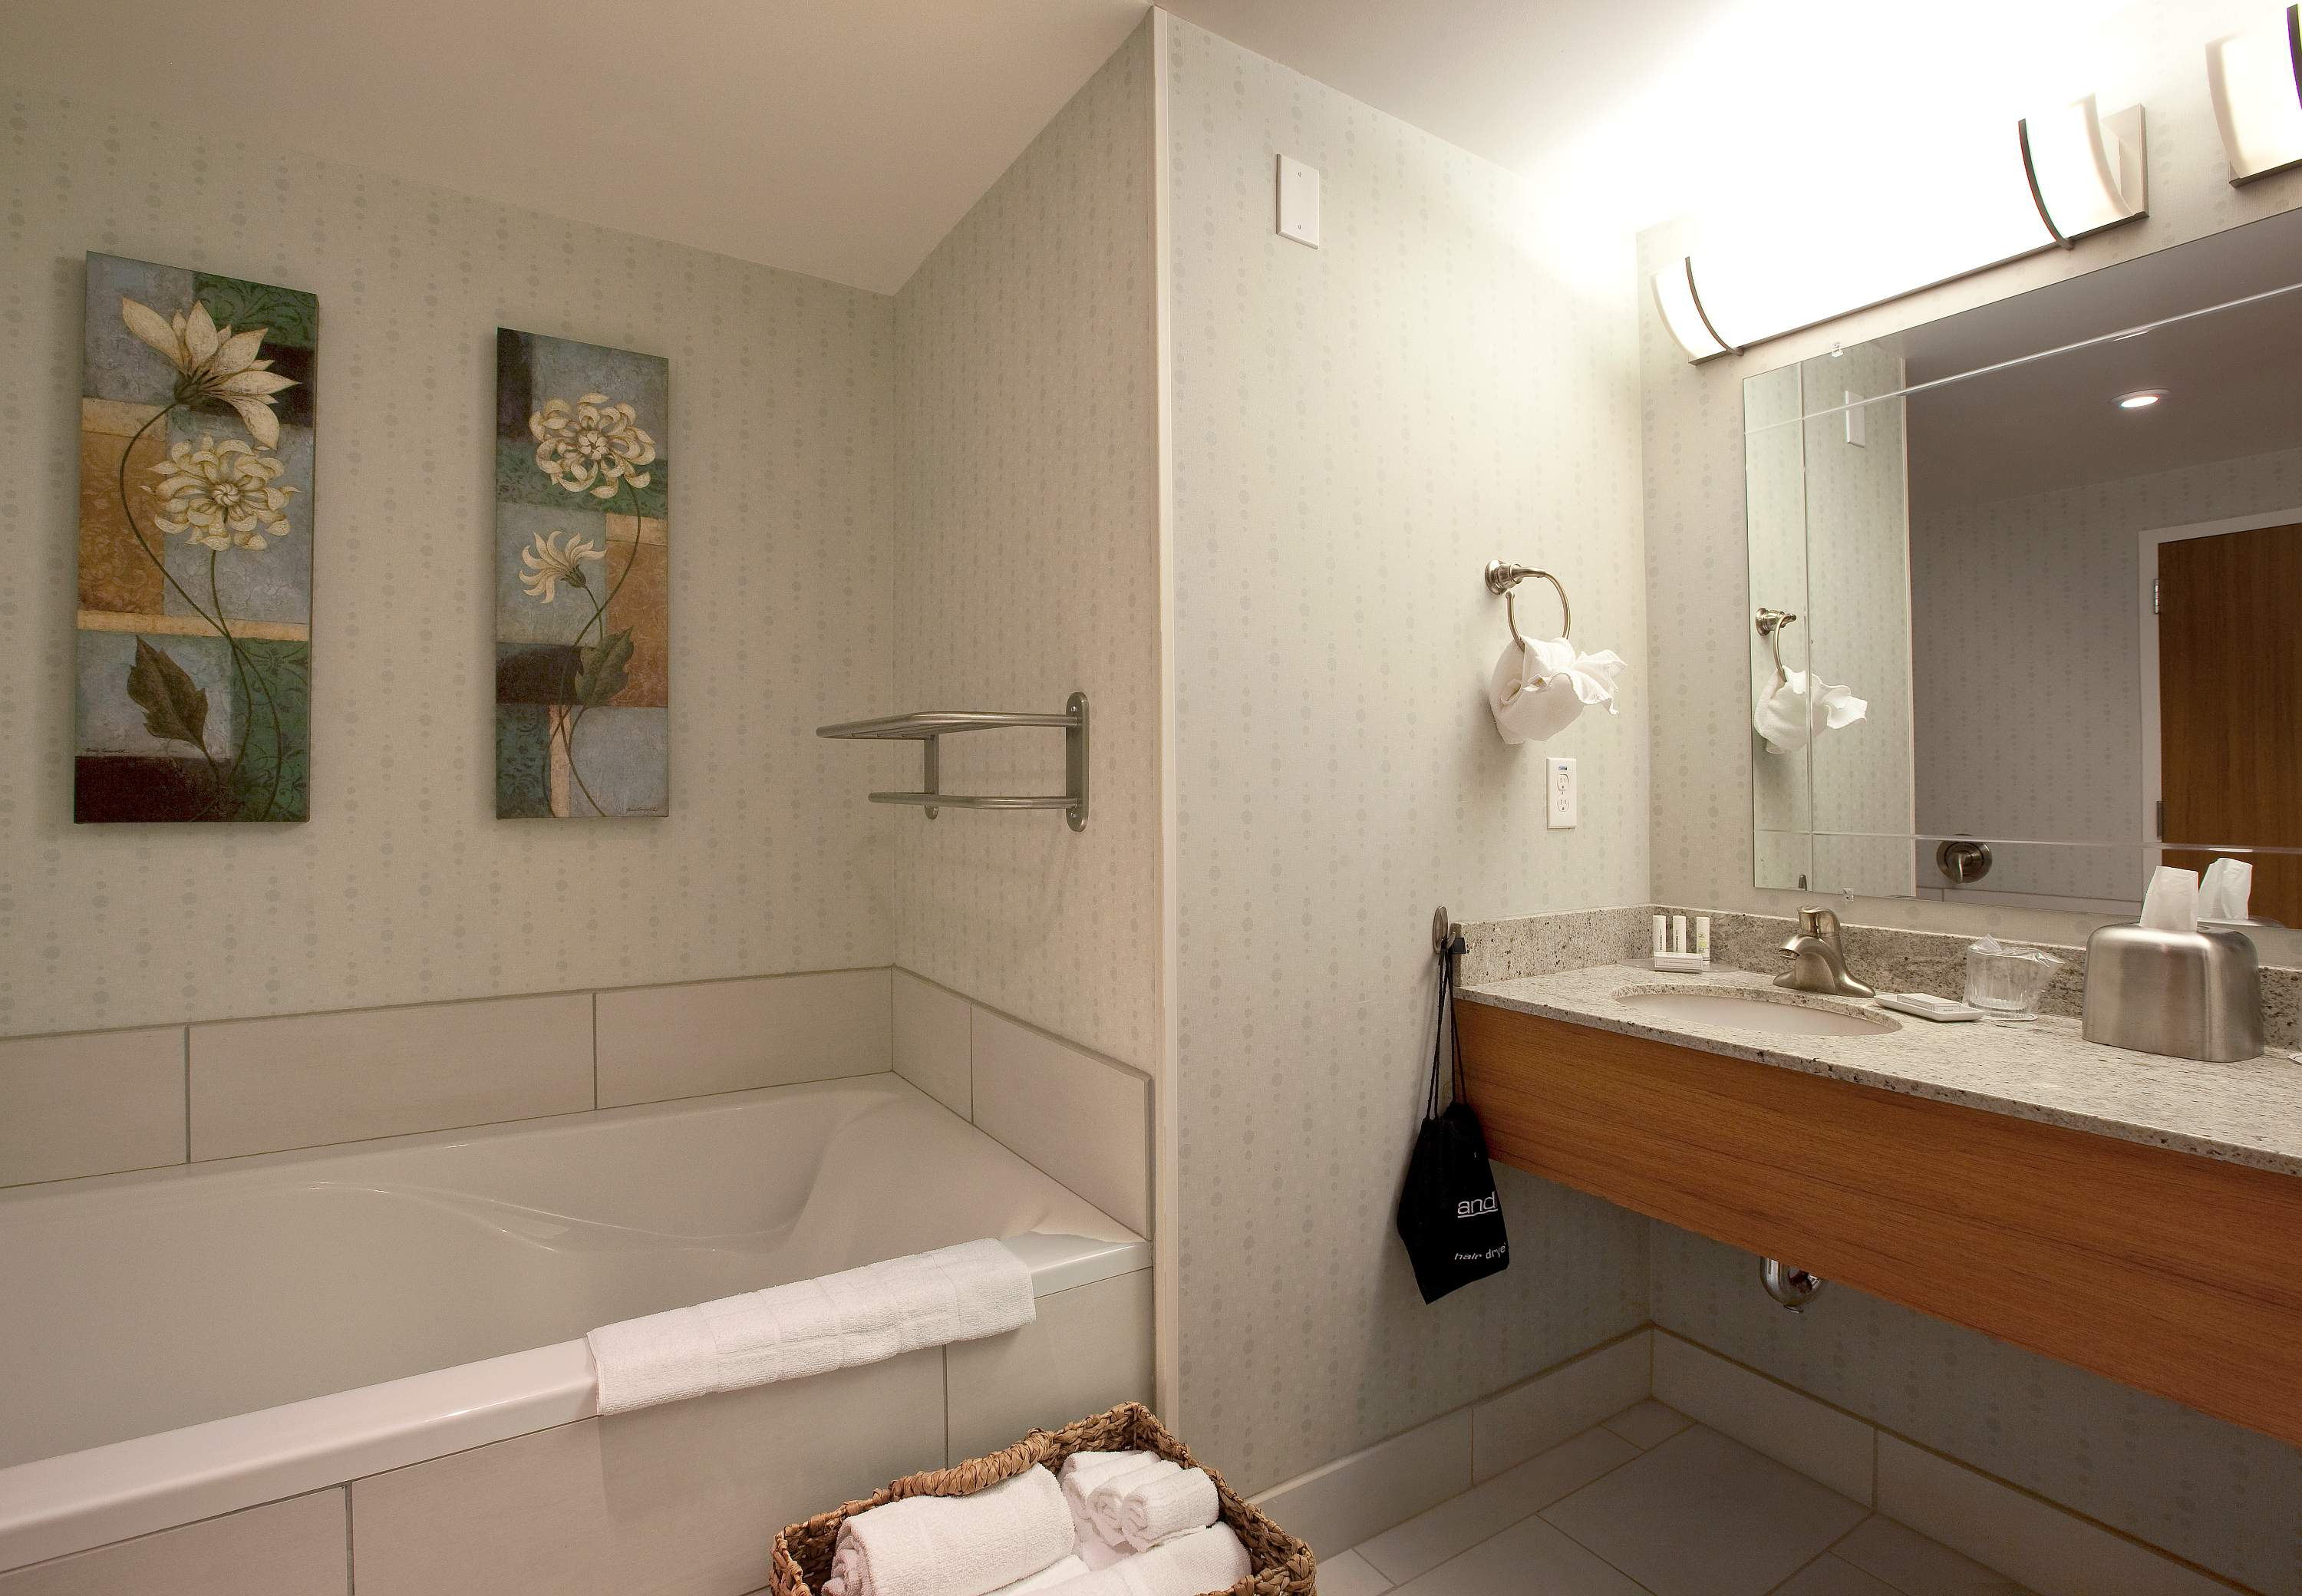 SpringHill Suites by Marriott Athens West image 2